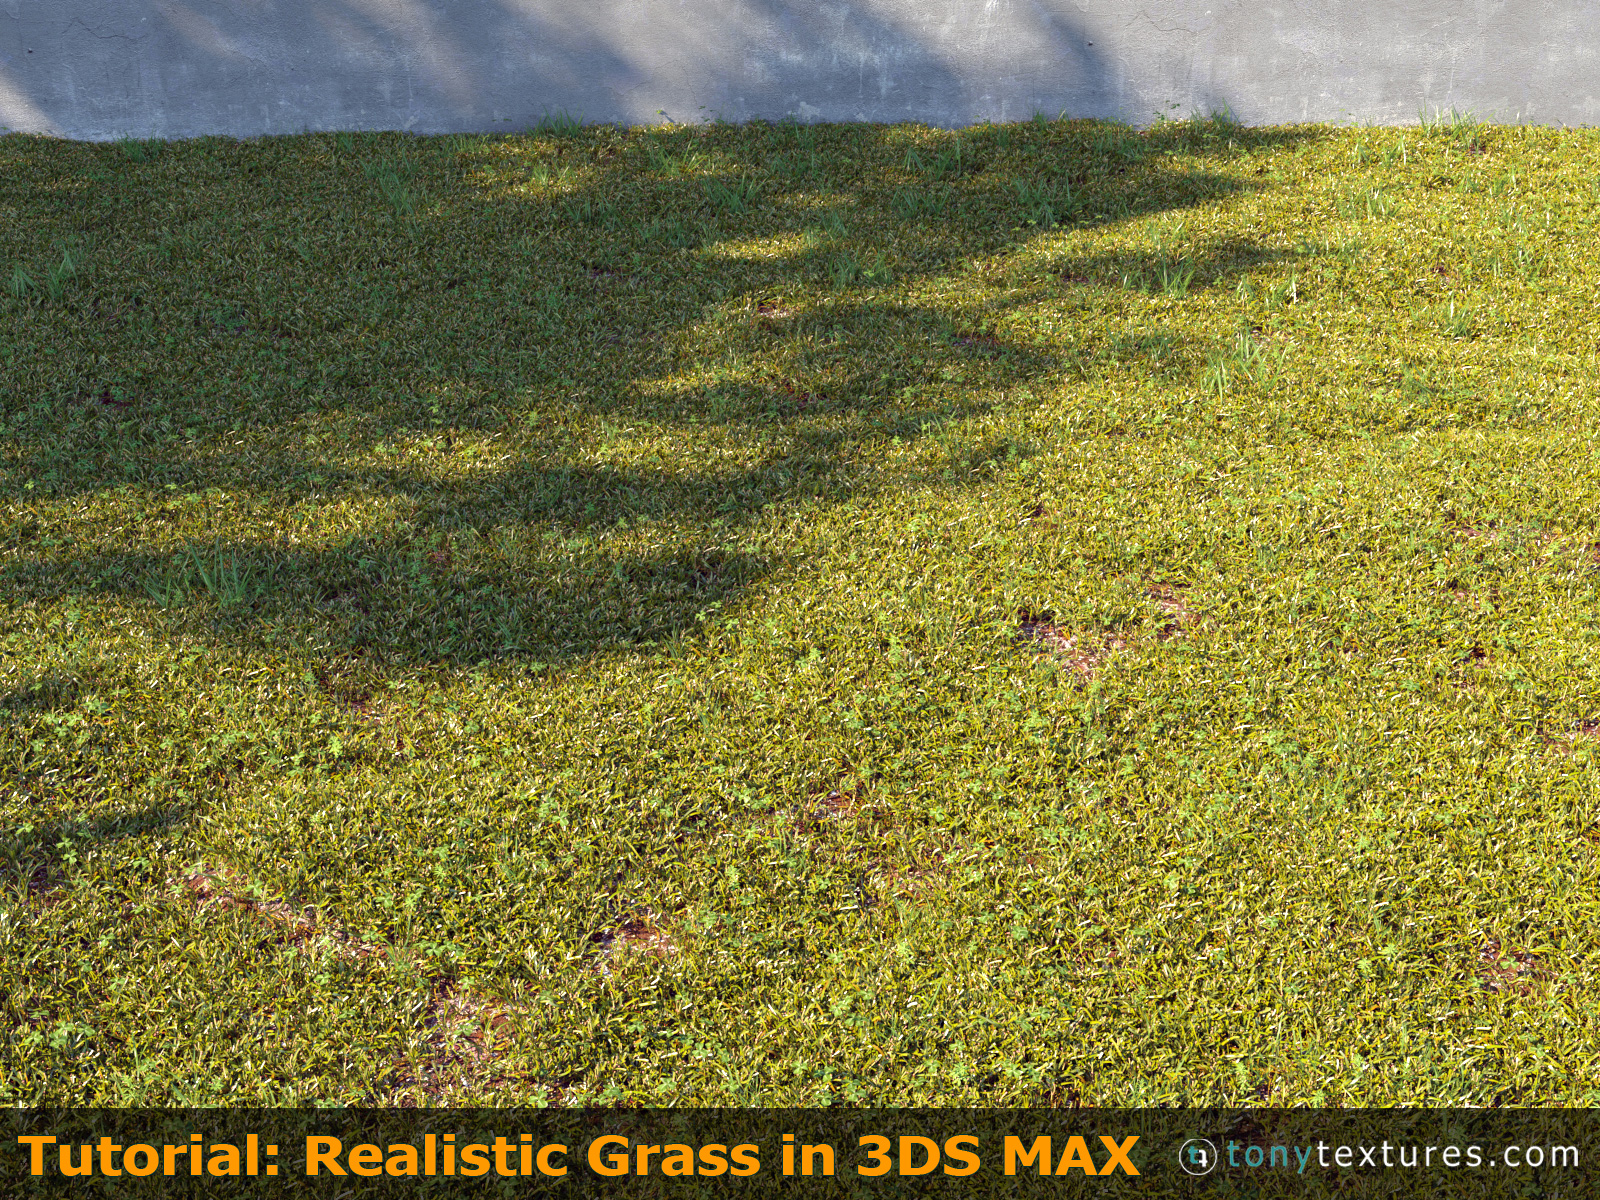 Tutorial How To Make And Render Super Realistic 3d Grass